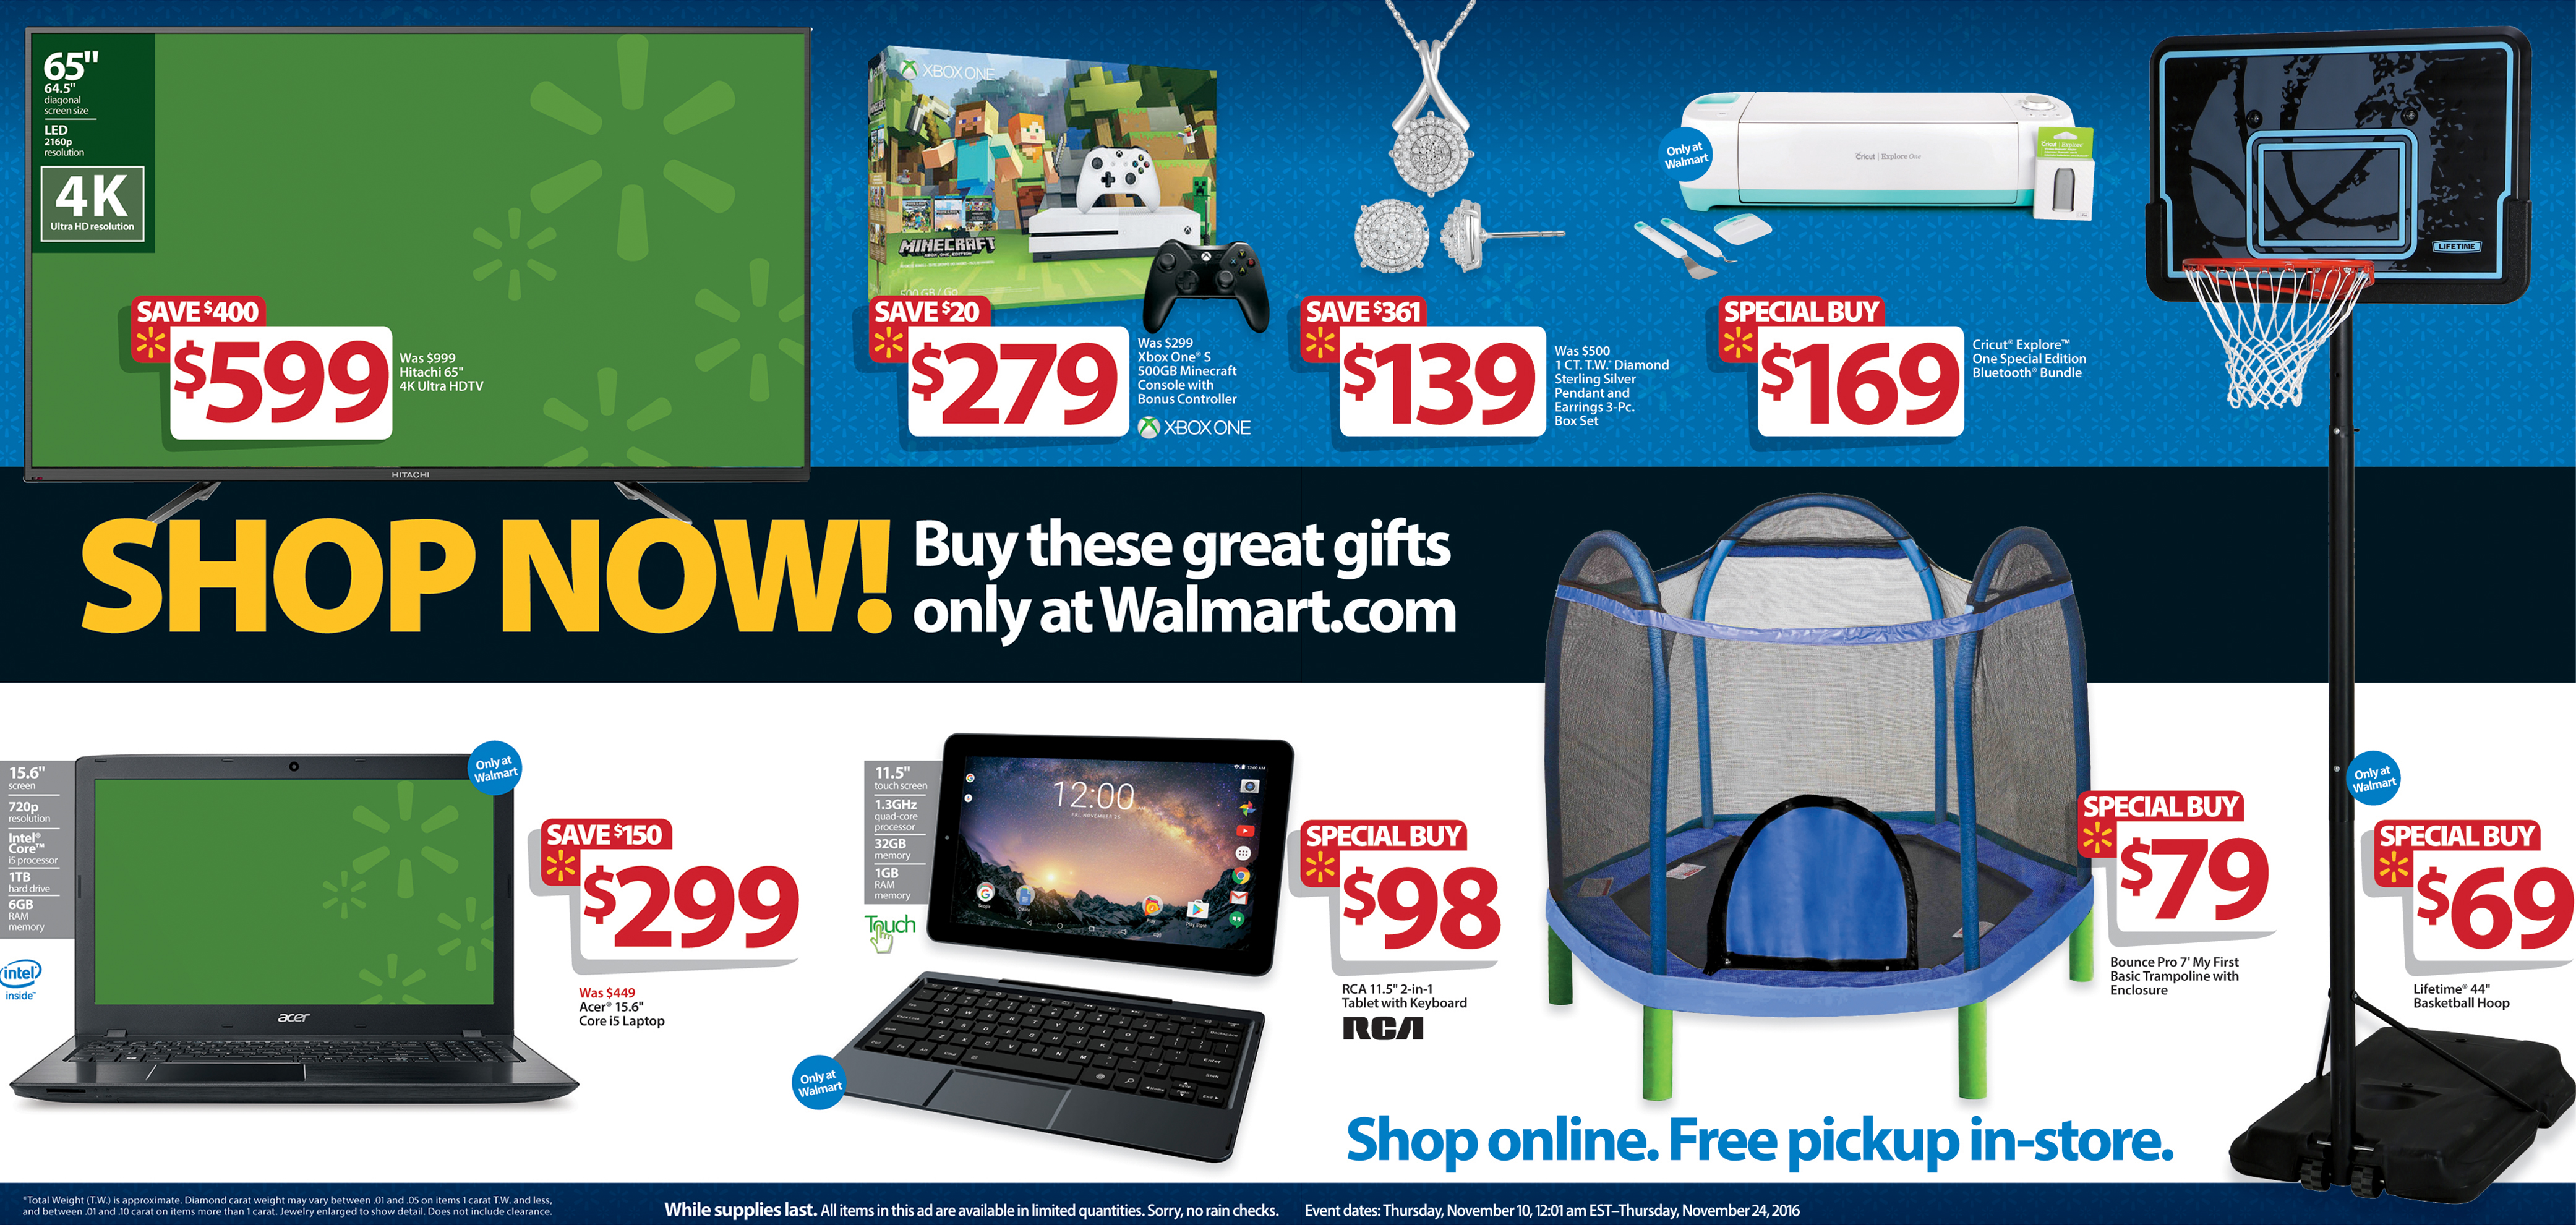 Walmart sale ad for this weekend - Walmart Unveils Black Friday 2016 Plans Great Deals More Availability